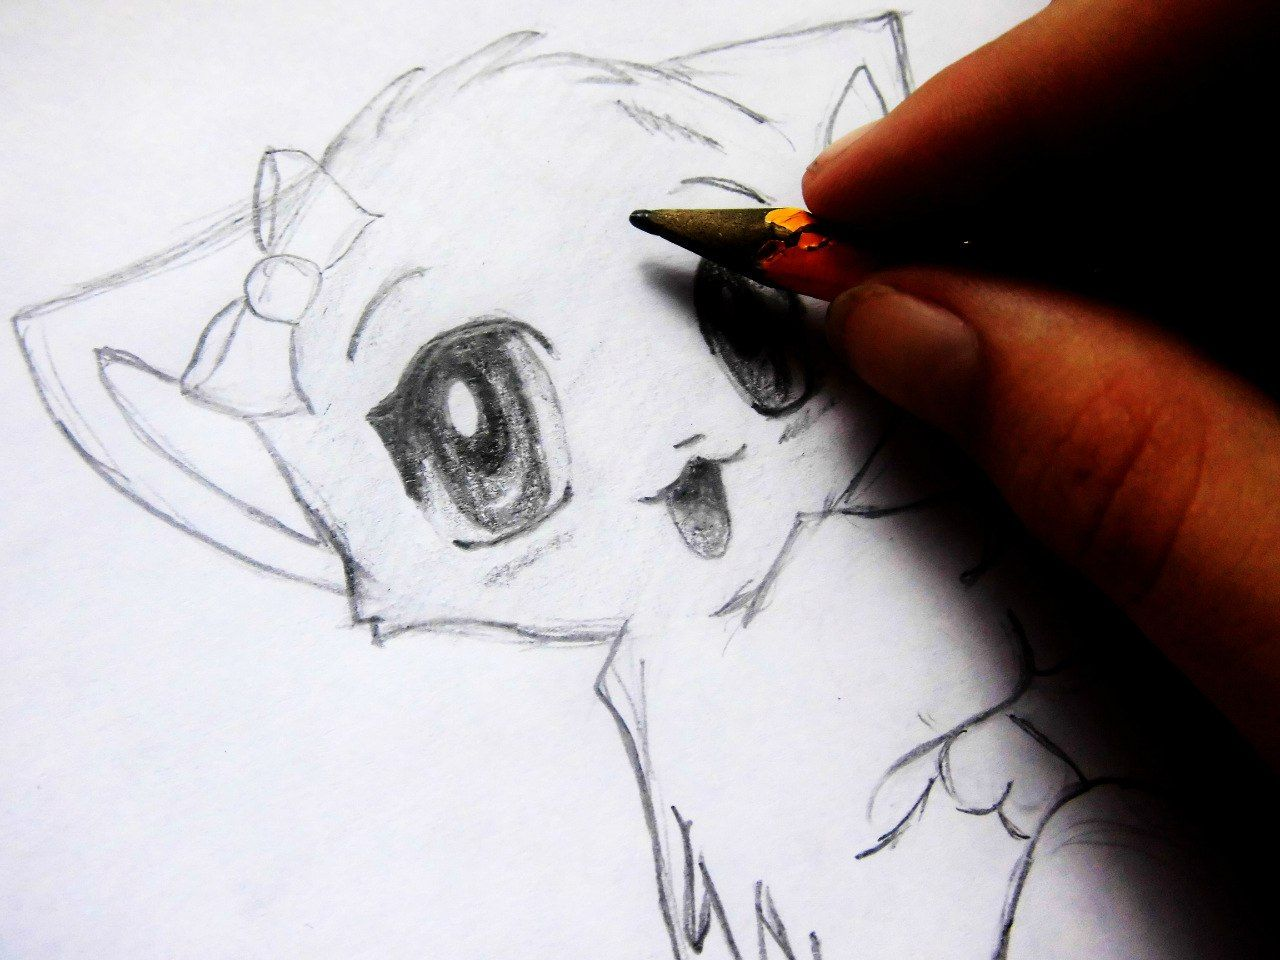 We draw an anime the girl a pencil on paper 9